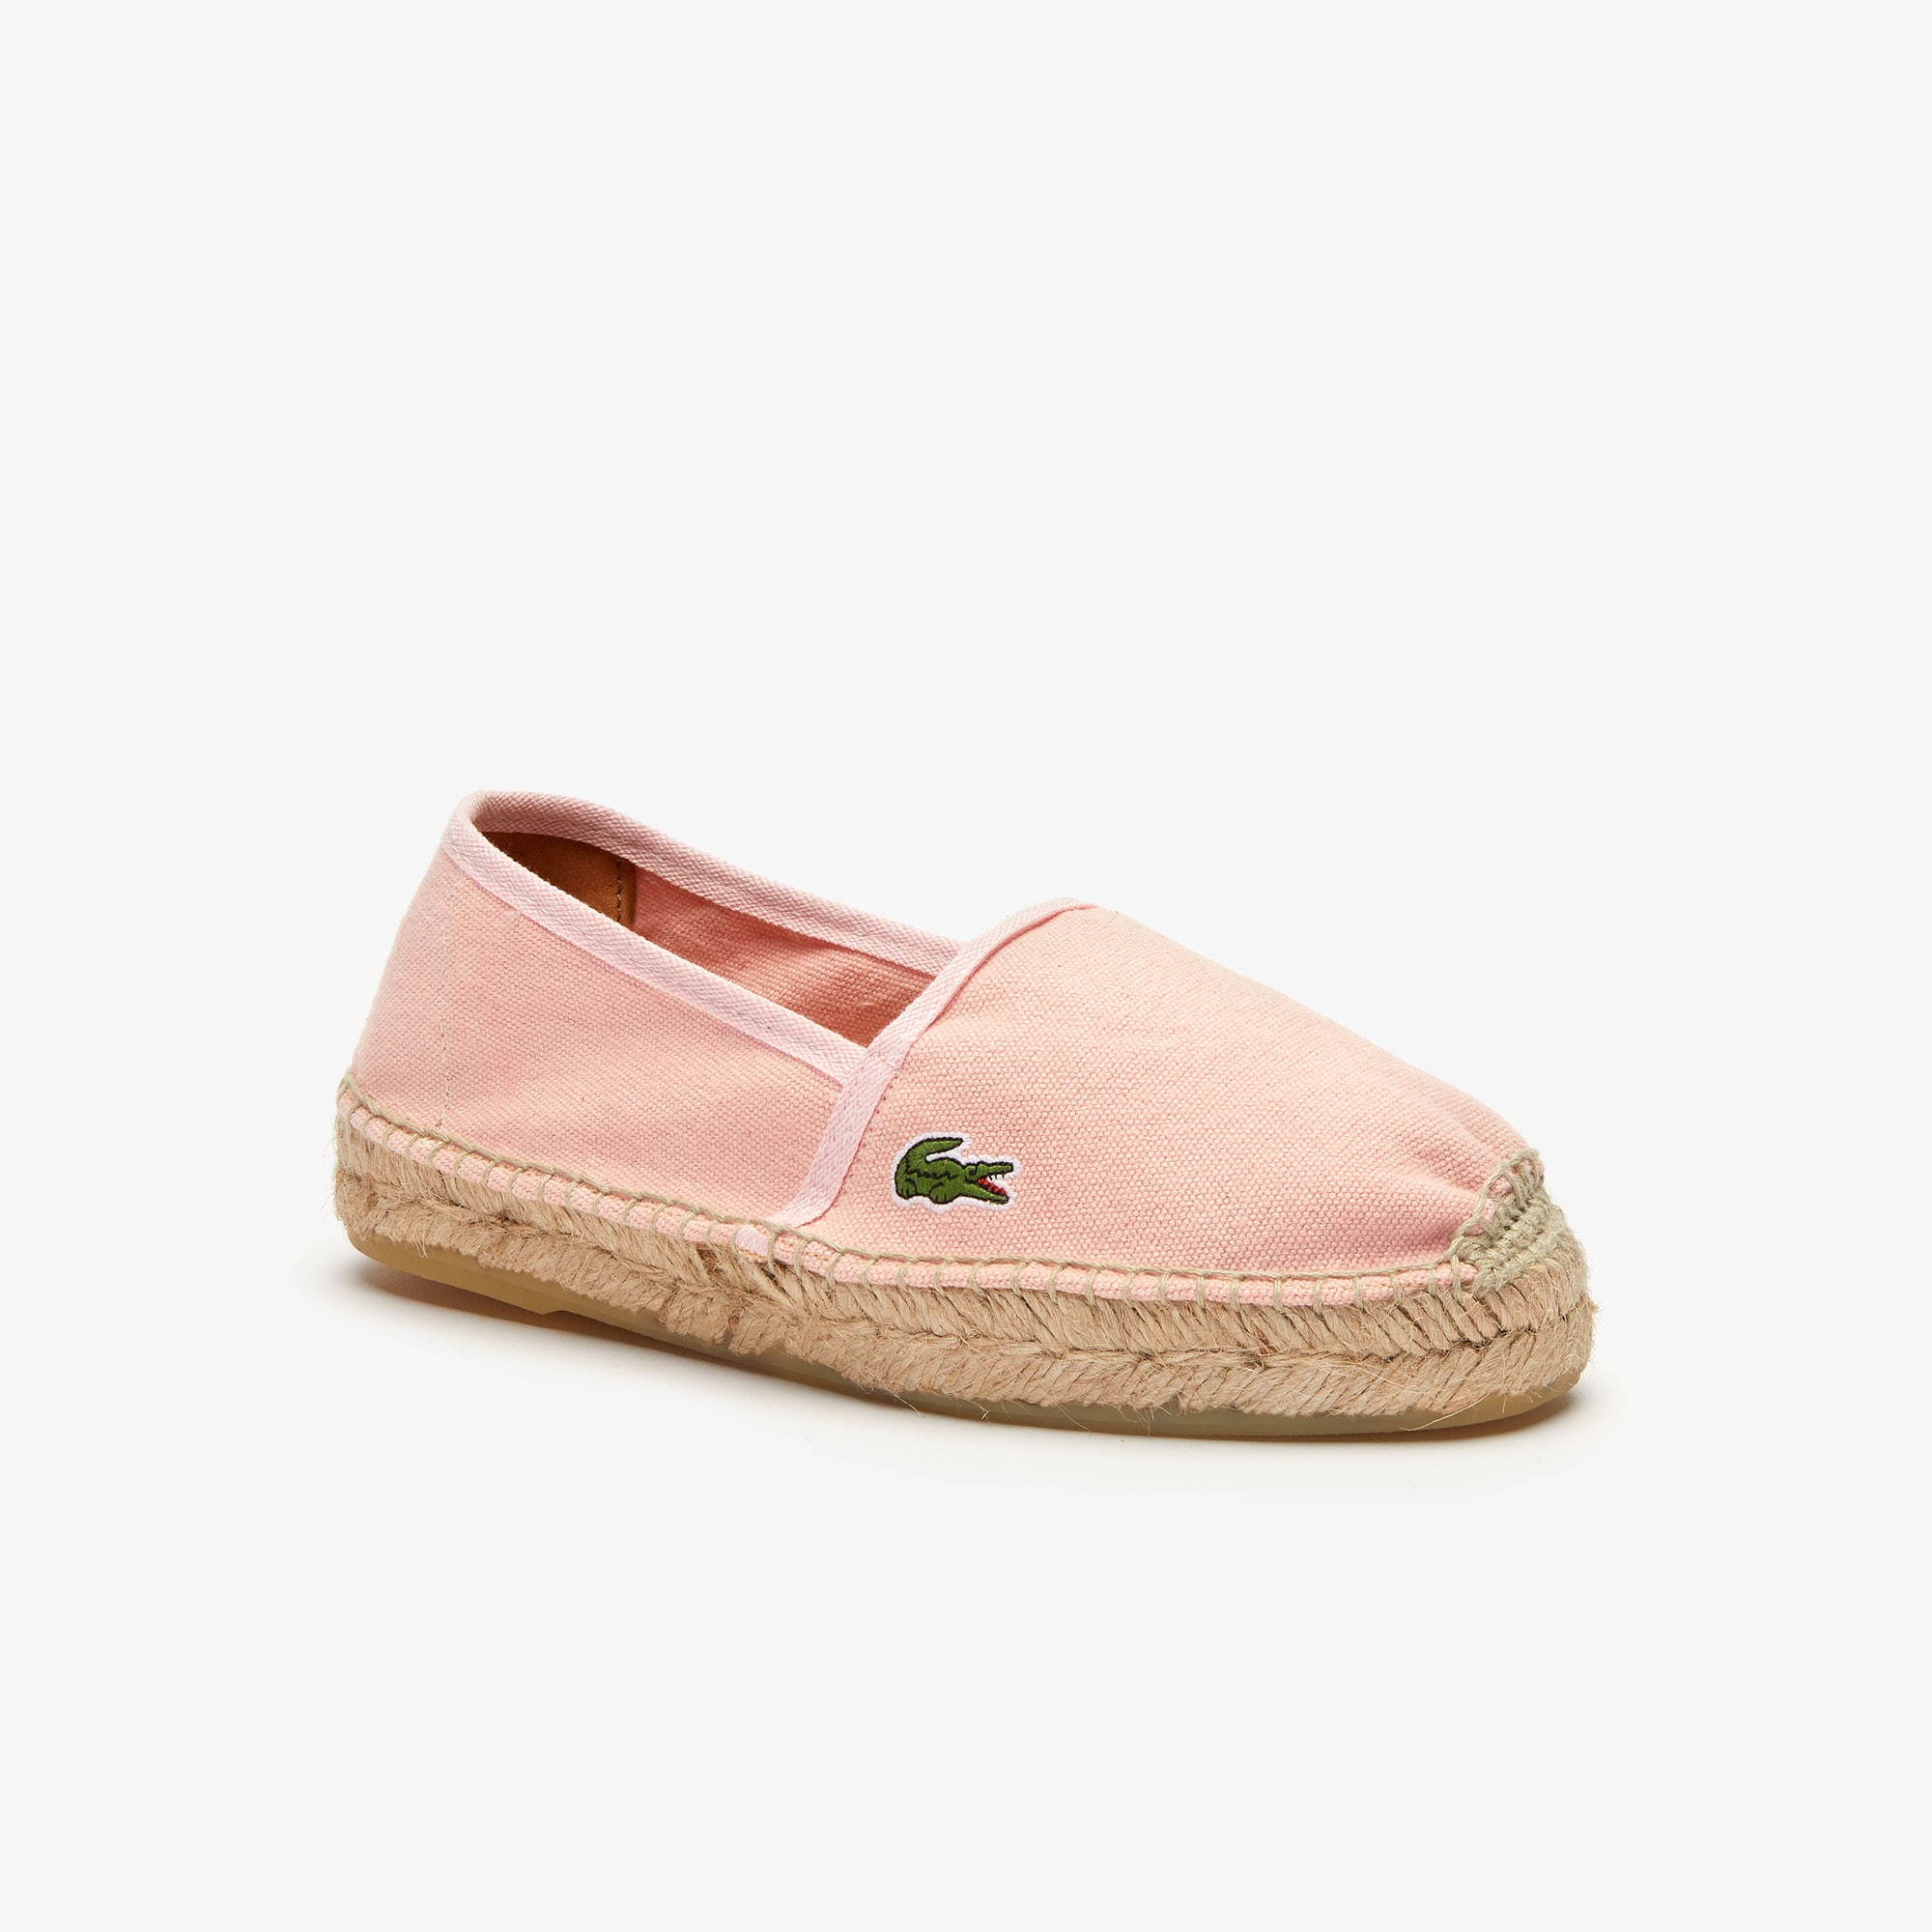 d03a0b80812a80 Chaussures femme | Collection Femme | LACOSTE